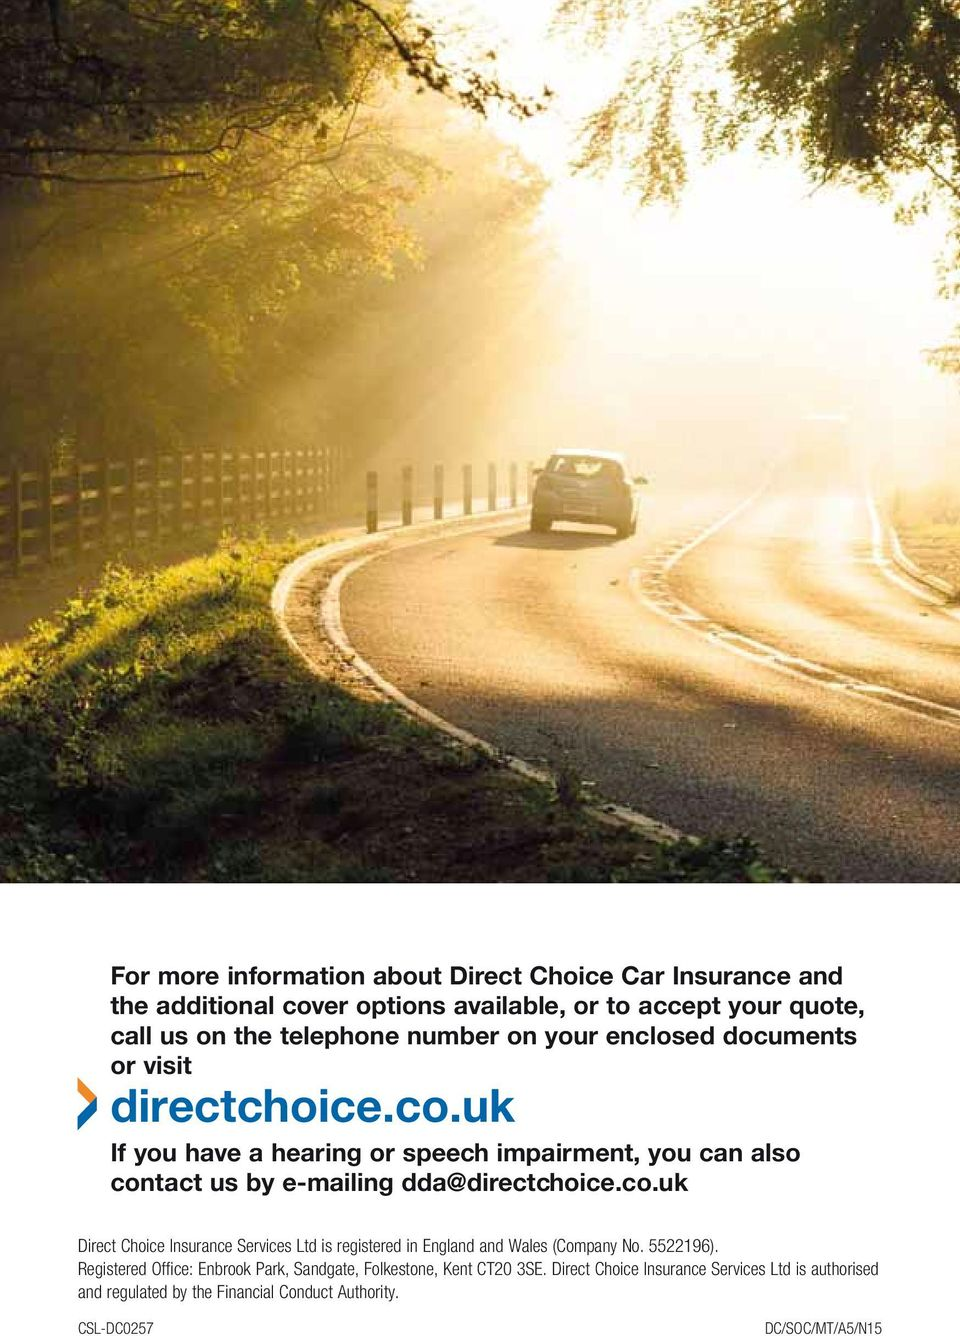 uk If you have a hearing or speech impairment, you can also contact us by e-mailing dda@directchoice.co.uk Direct Choice Insurance Services Ltd is registered in England and Wales (Company No.